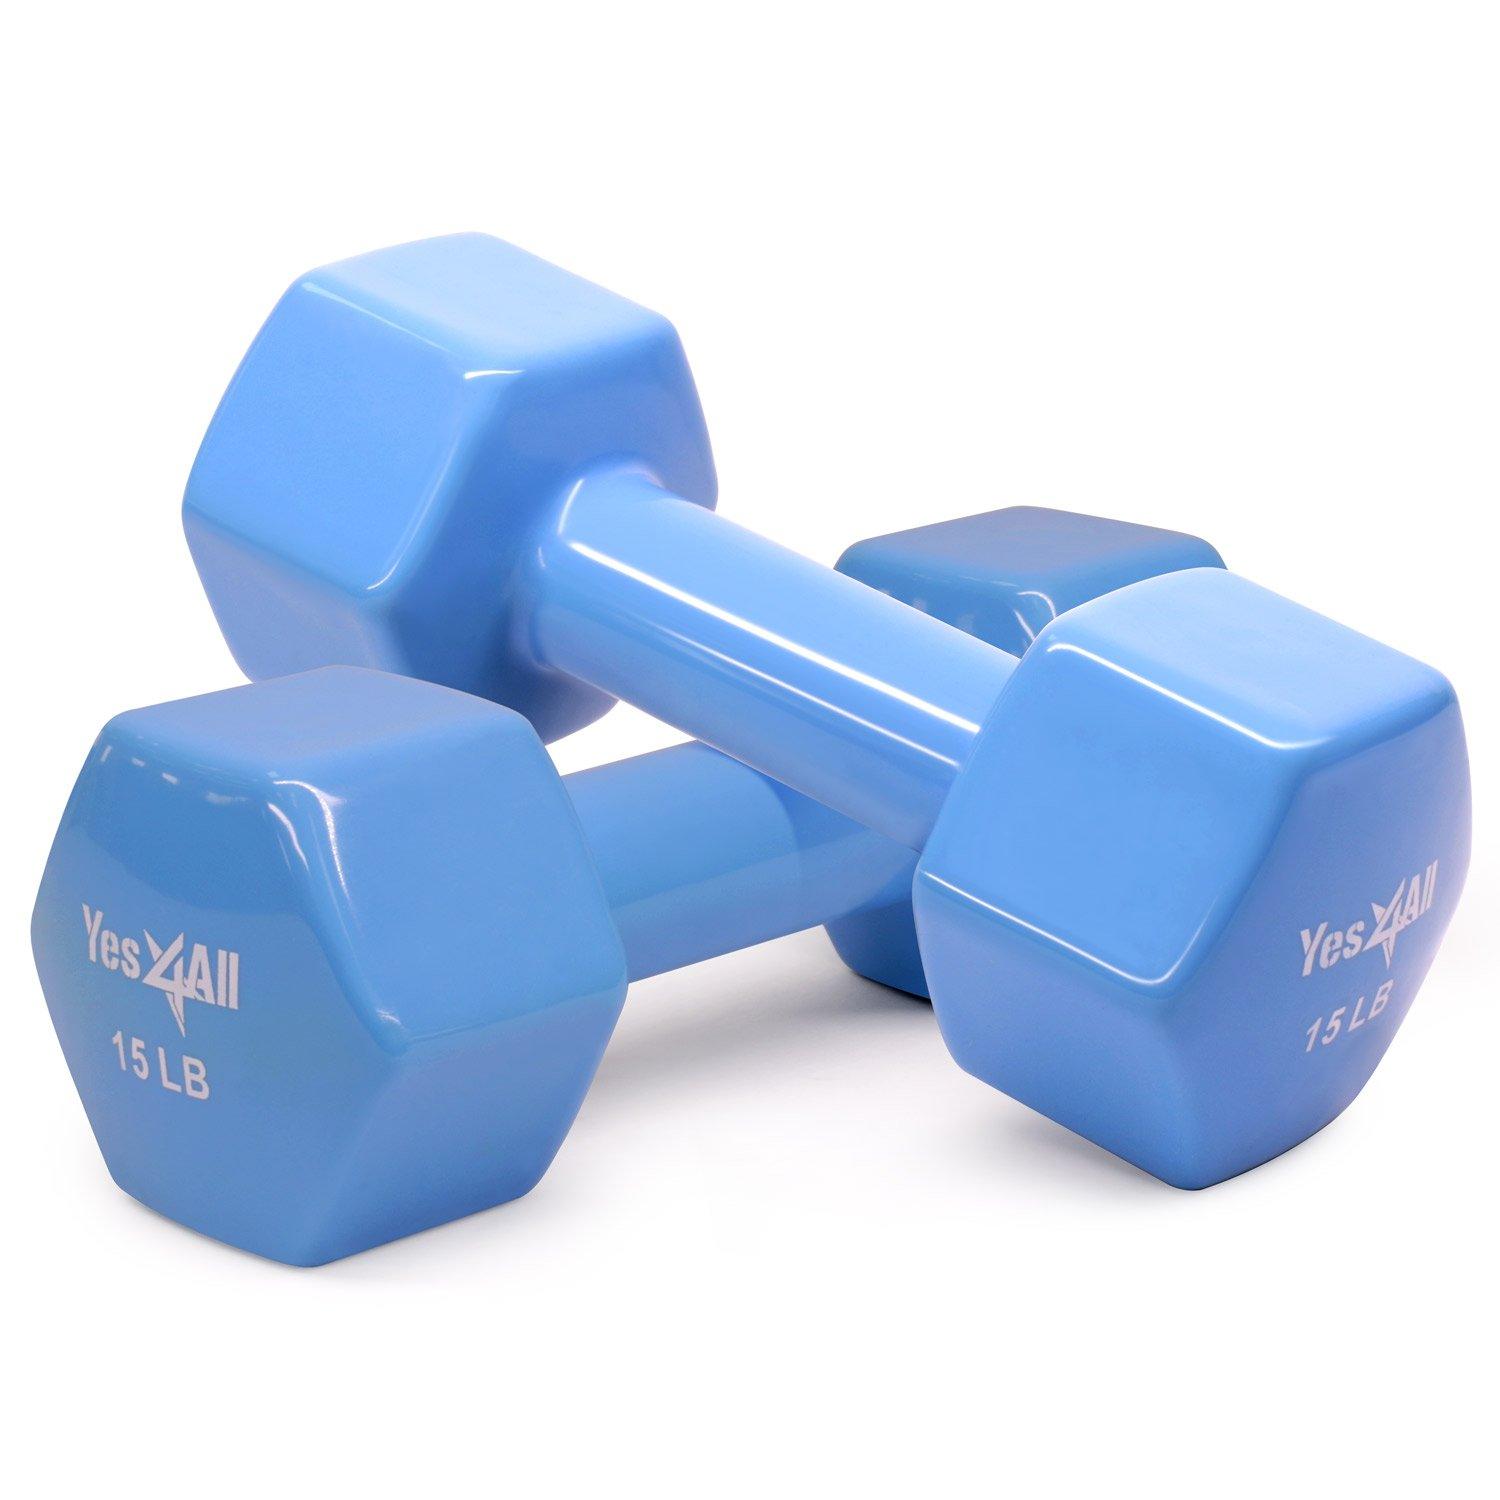 Yes4All Vinyl Coated Dumbbells - PVC Hand Weights for Total Body Workout (Set of 2, Blue, 15 lbs)